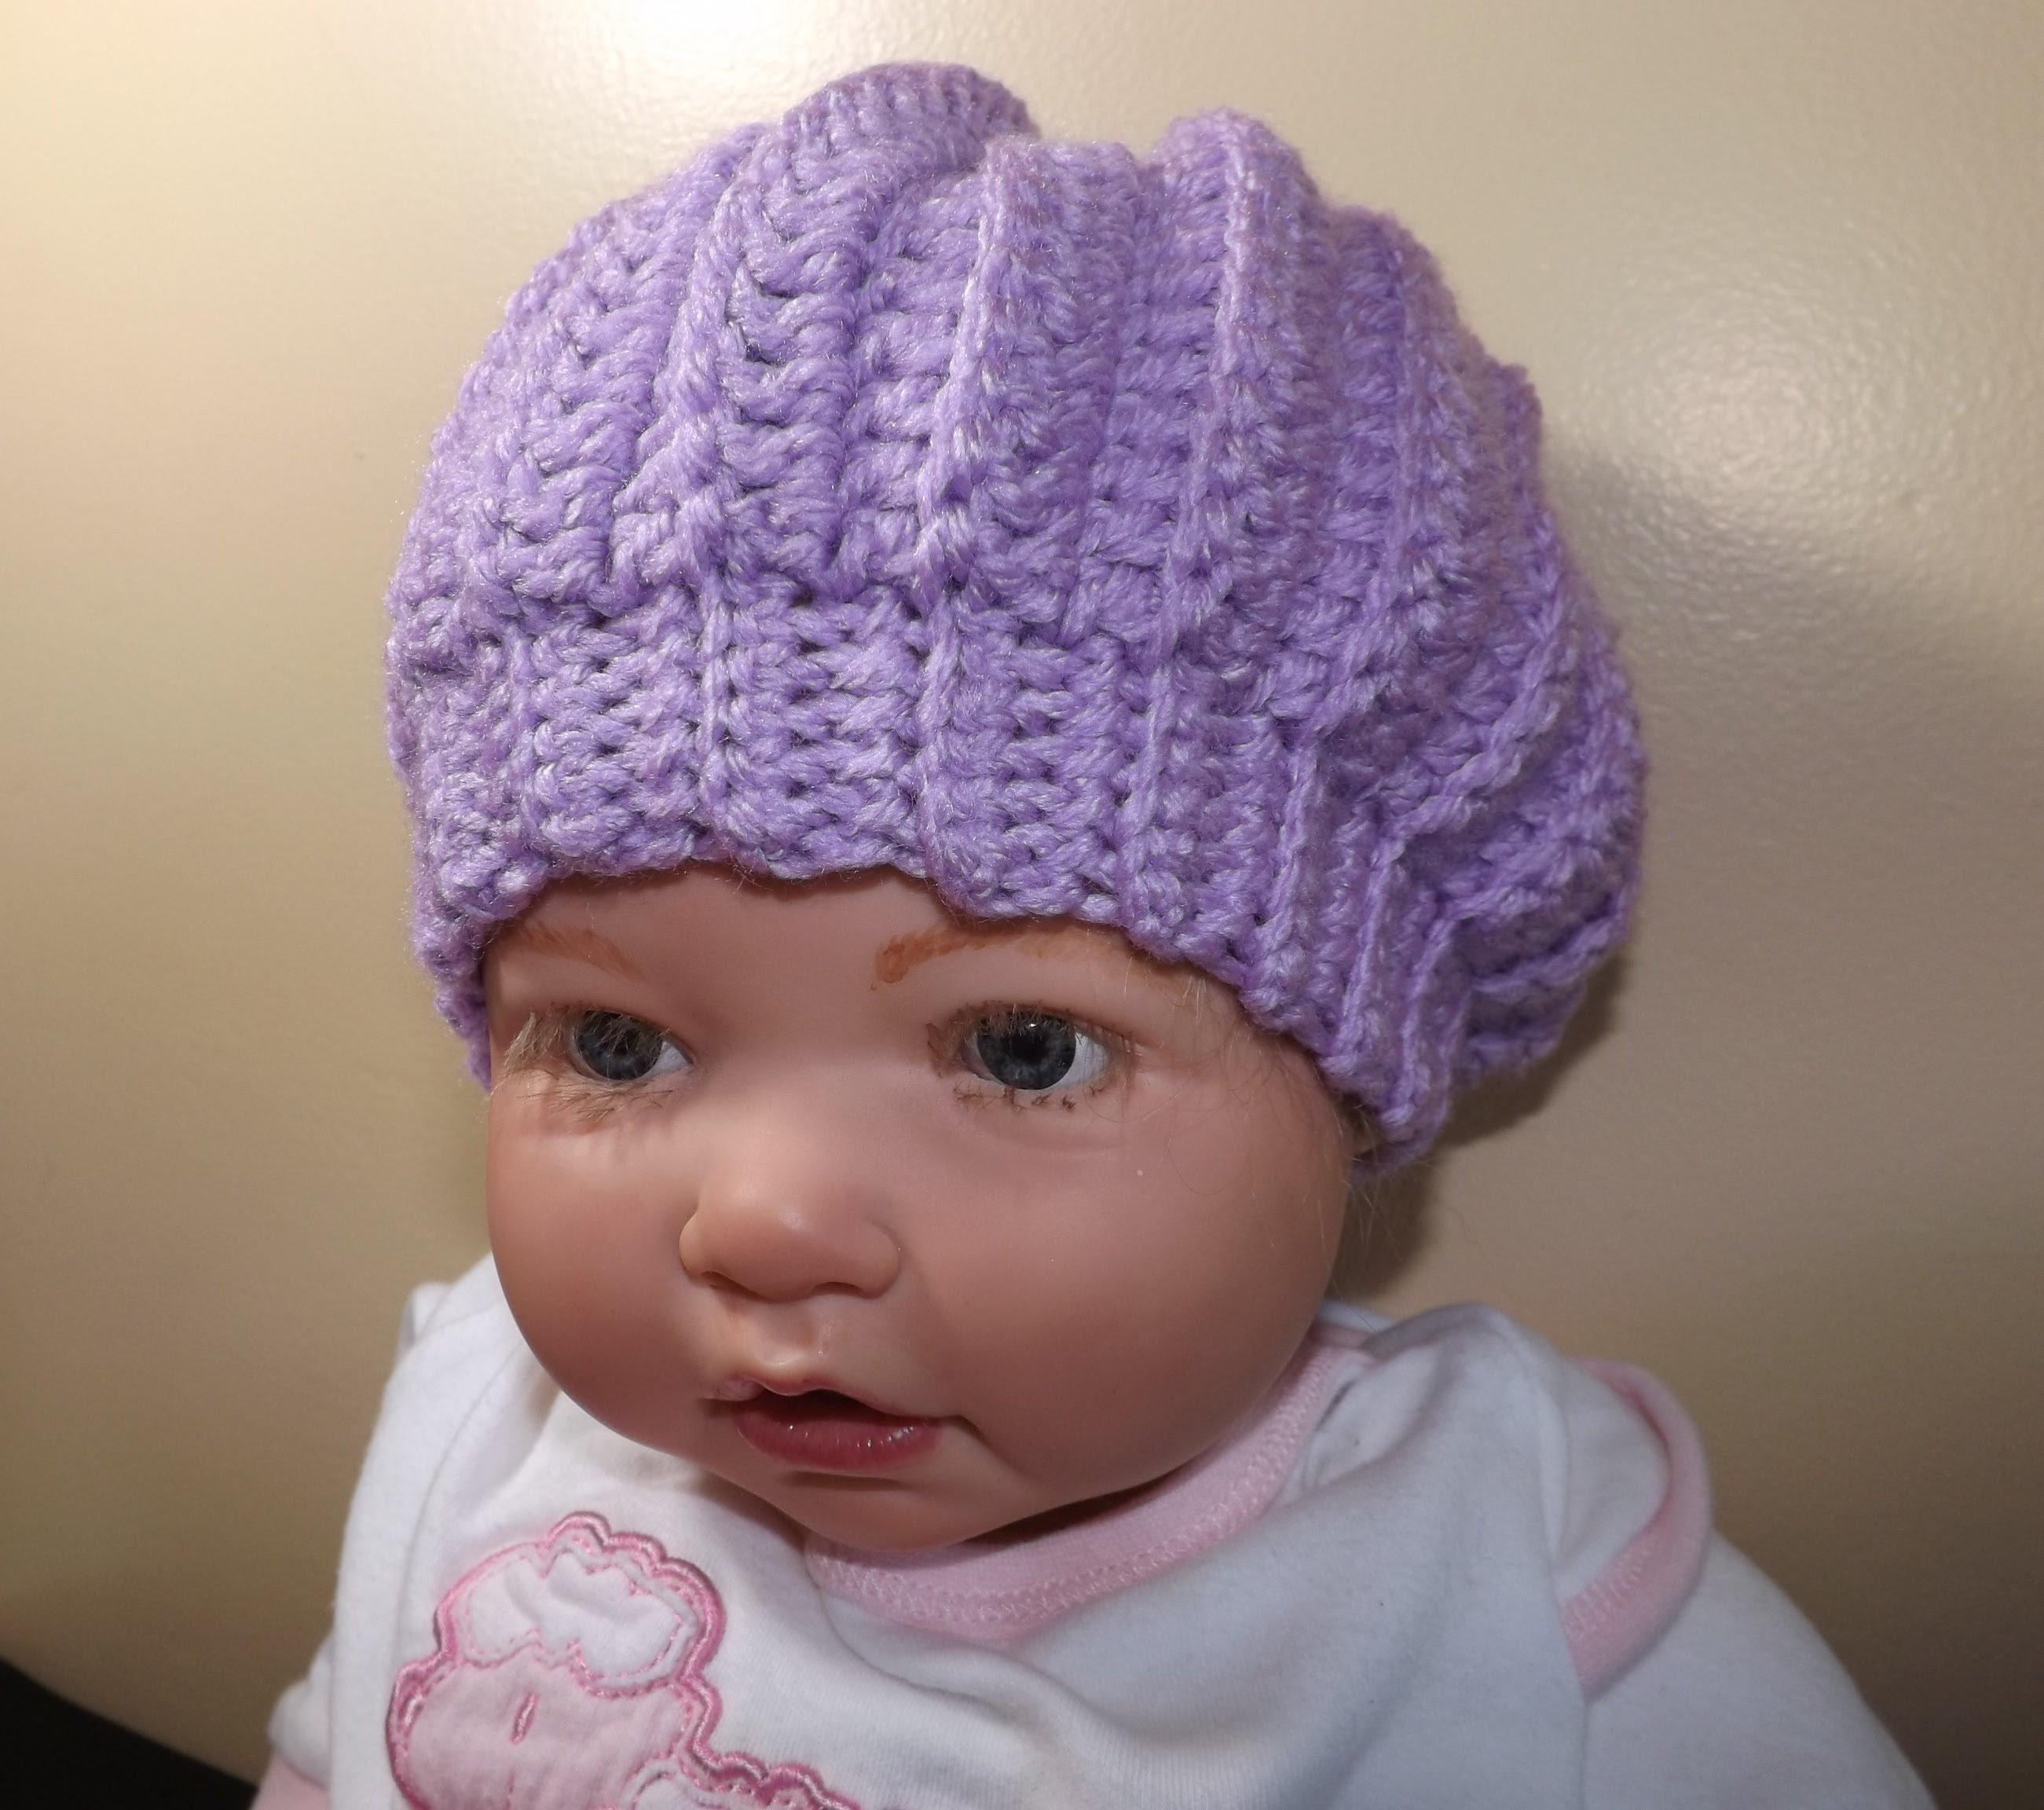 crochet baby hats crochet baby hat - with ruby stedman - youtube spgcbyu